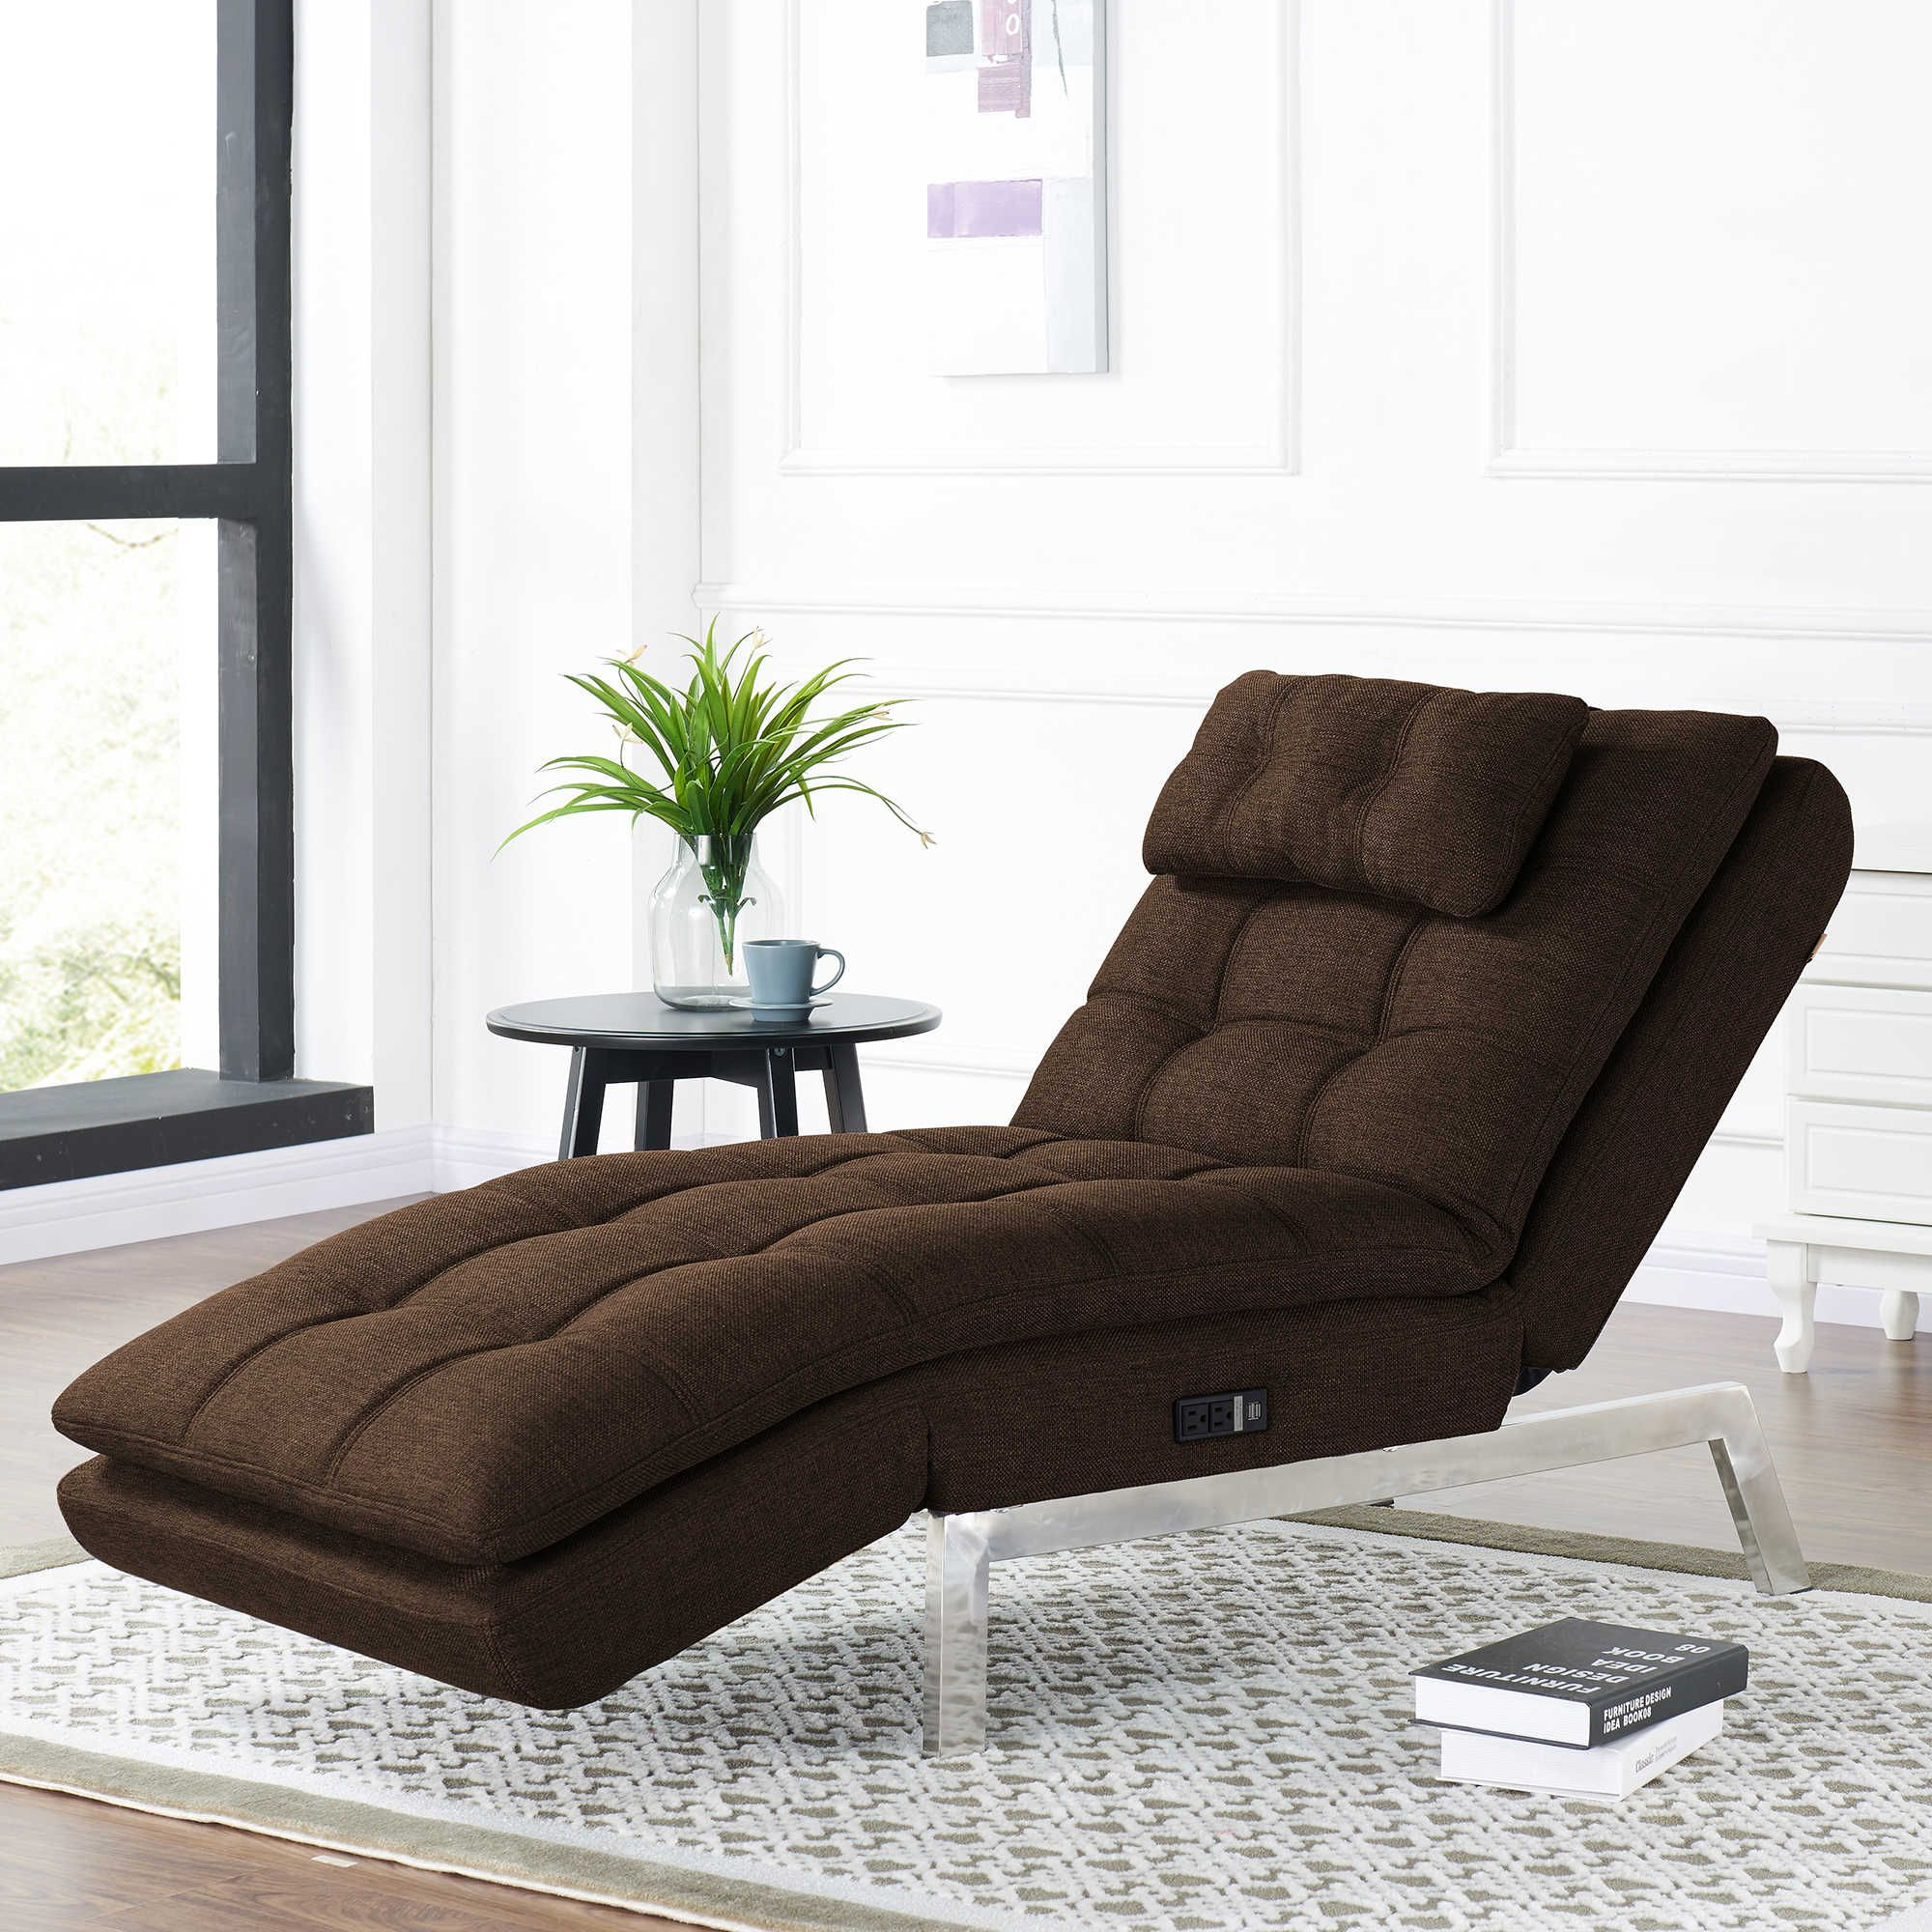 Lifestyle Solutions Vaugn Convertible Chaise in Dark